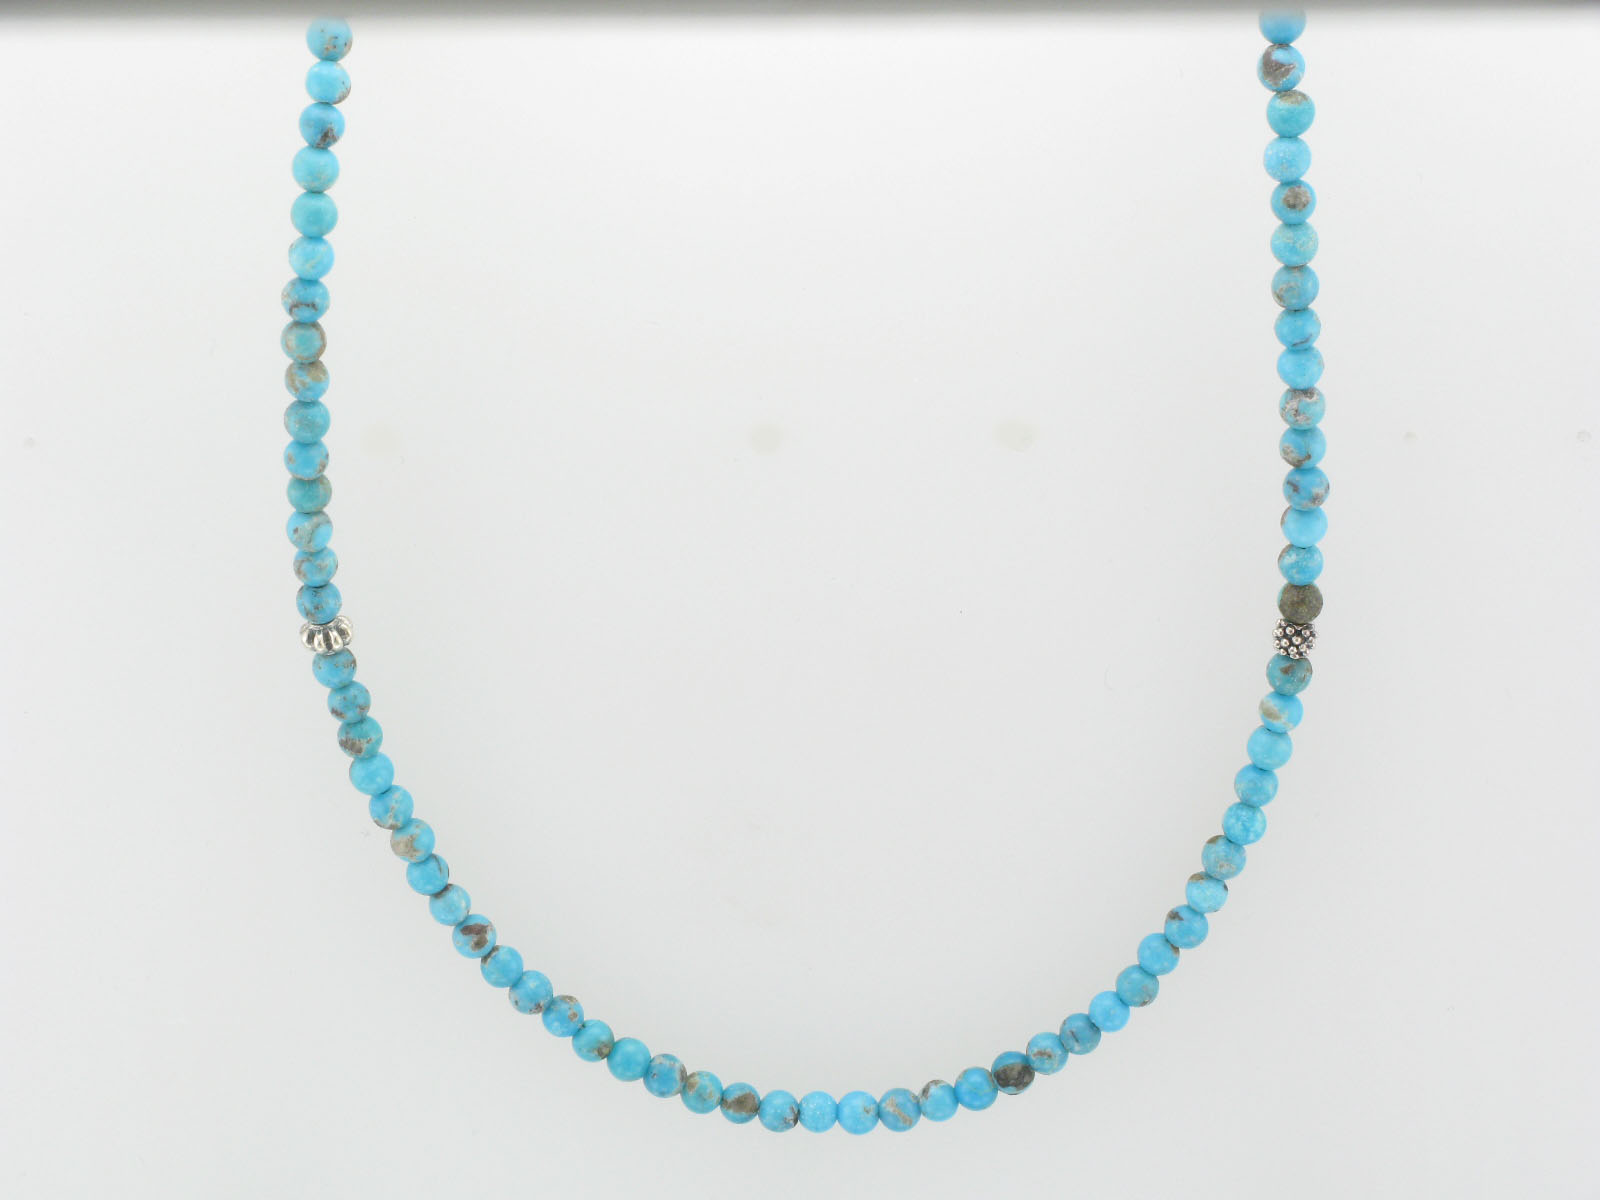 Turquoise Caviar Strand Necklace